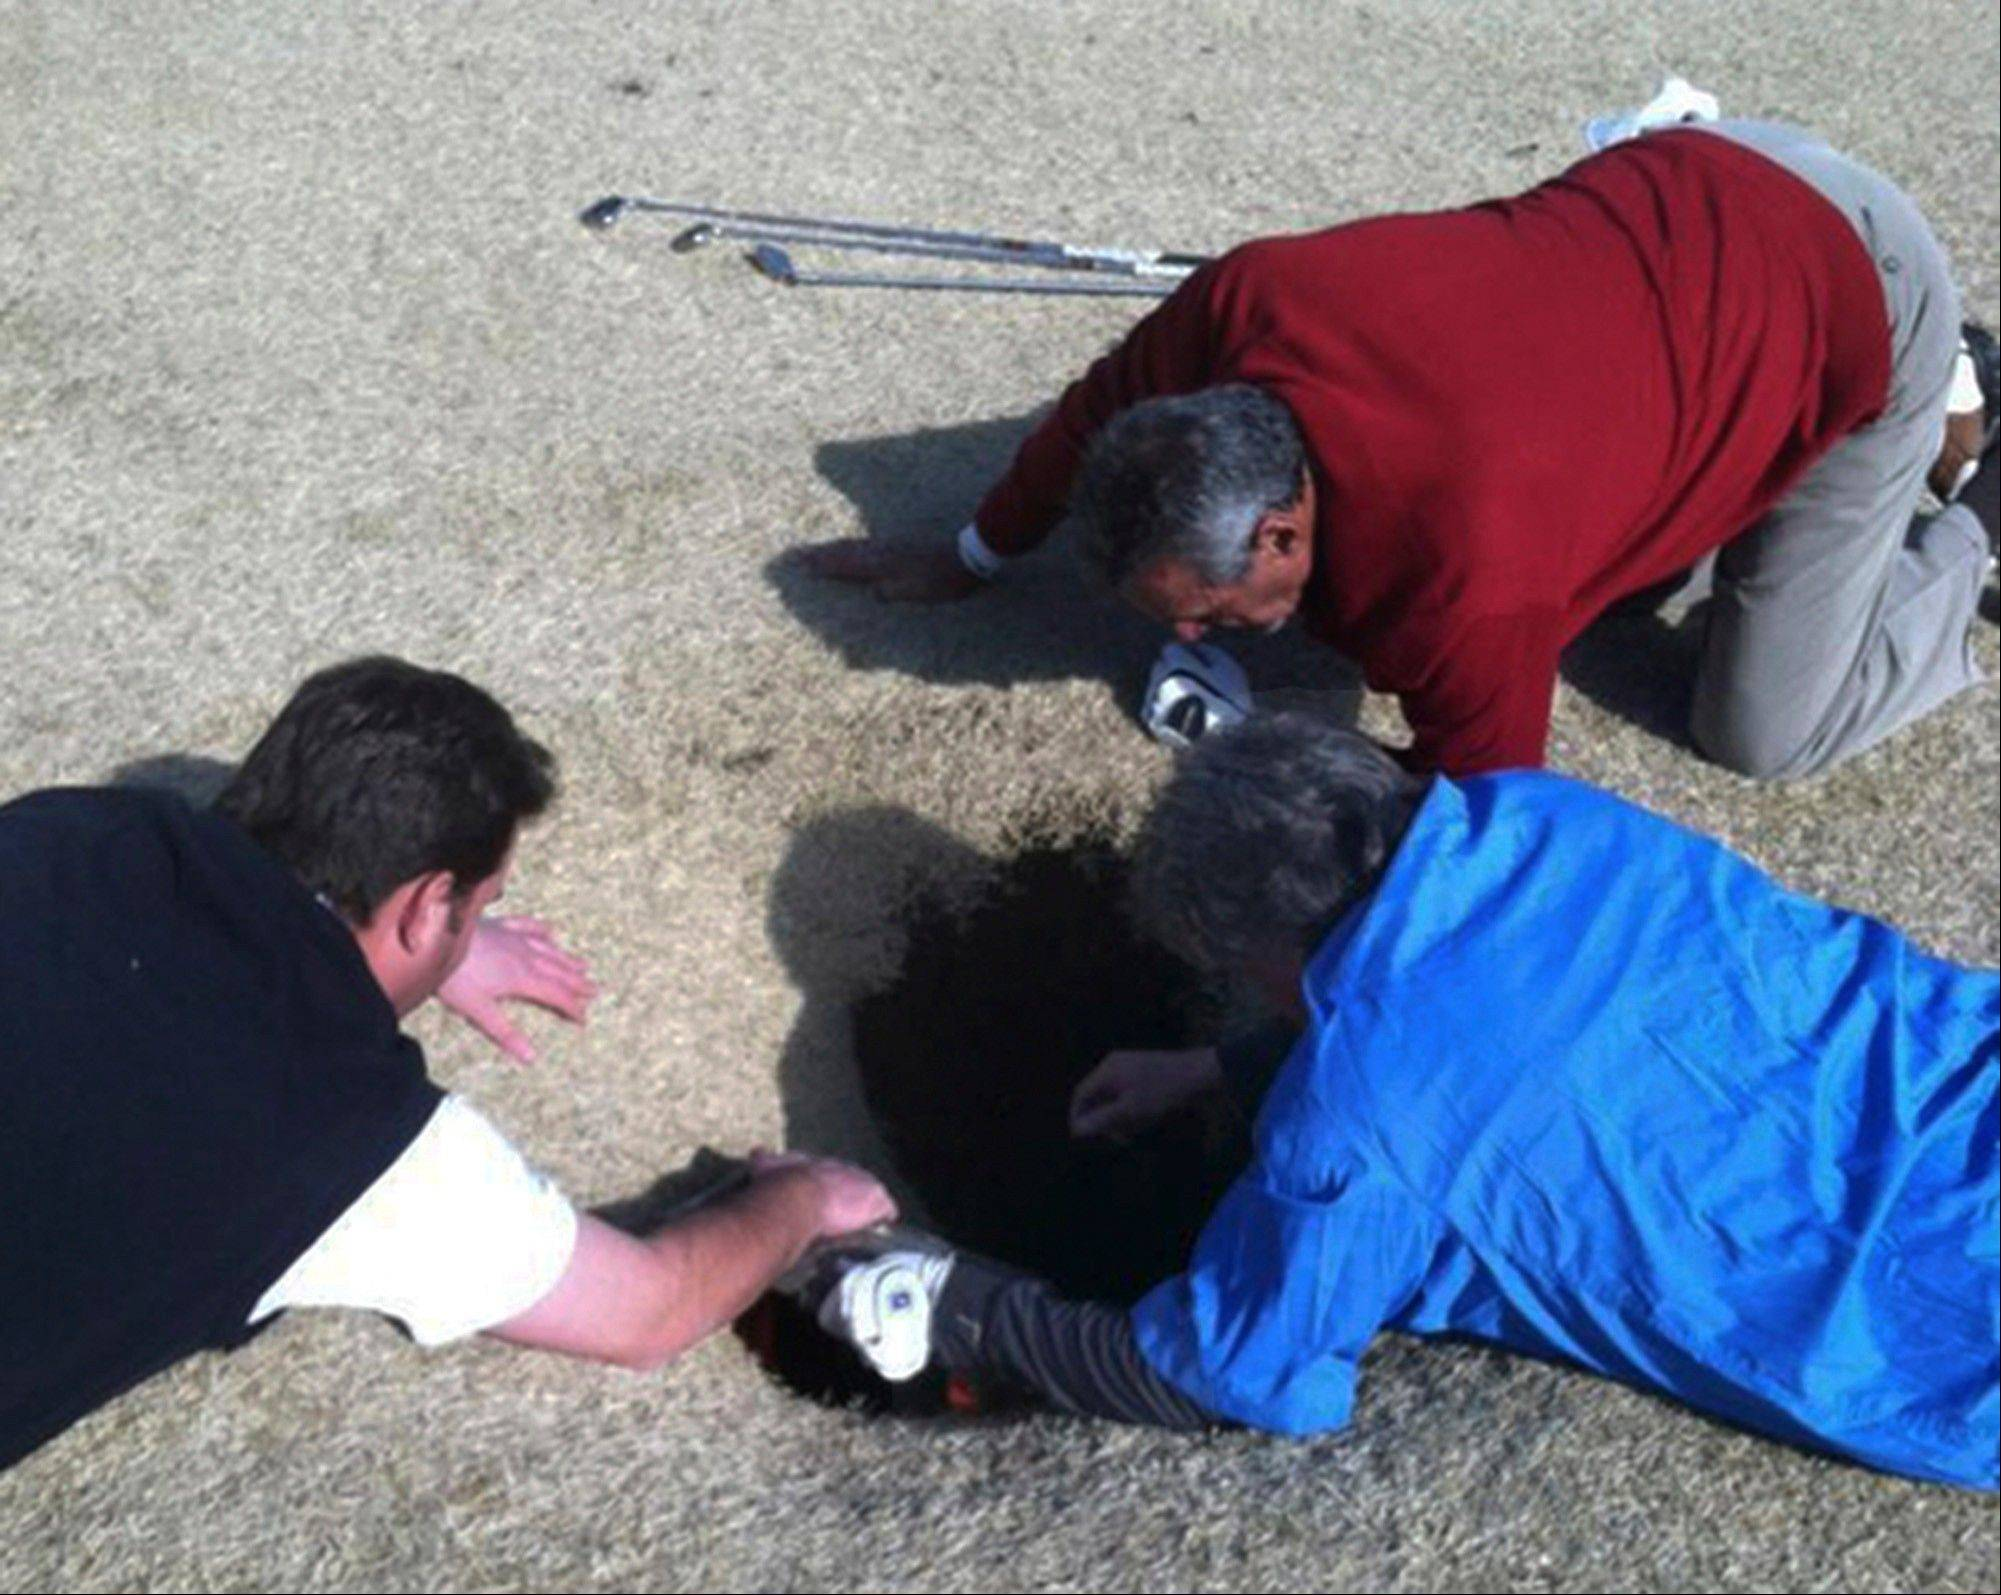 Hank Martinez, top, Ed Magaletta, right, and Russ Nobbe look into an 18-foot-deep and 10-foot-wide sinkhole that golfer Mark Minhal fell into while playing golf at the Annbriar Golf Course in Waterloo, Ill.